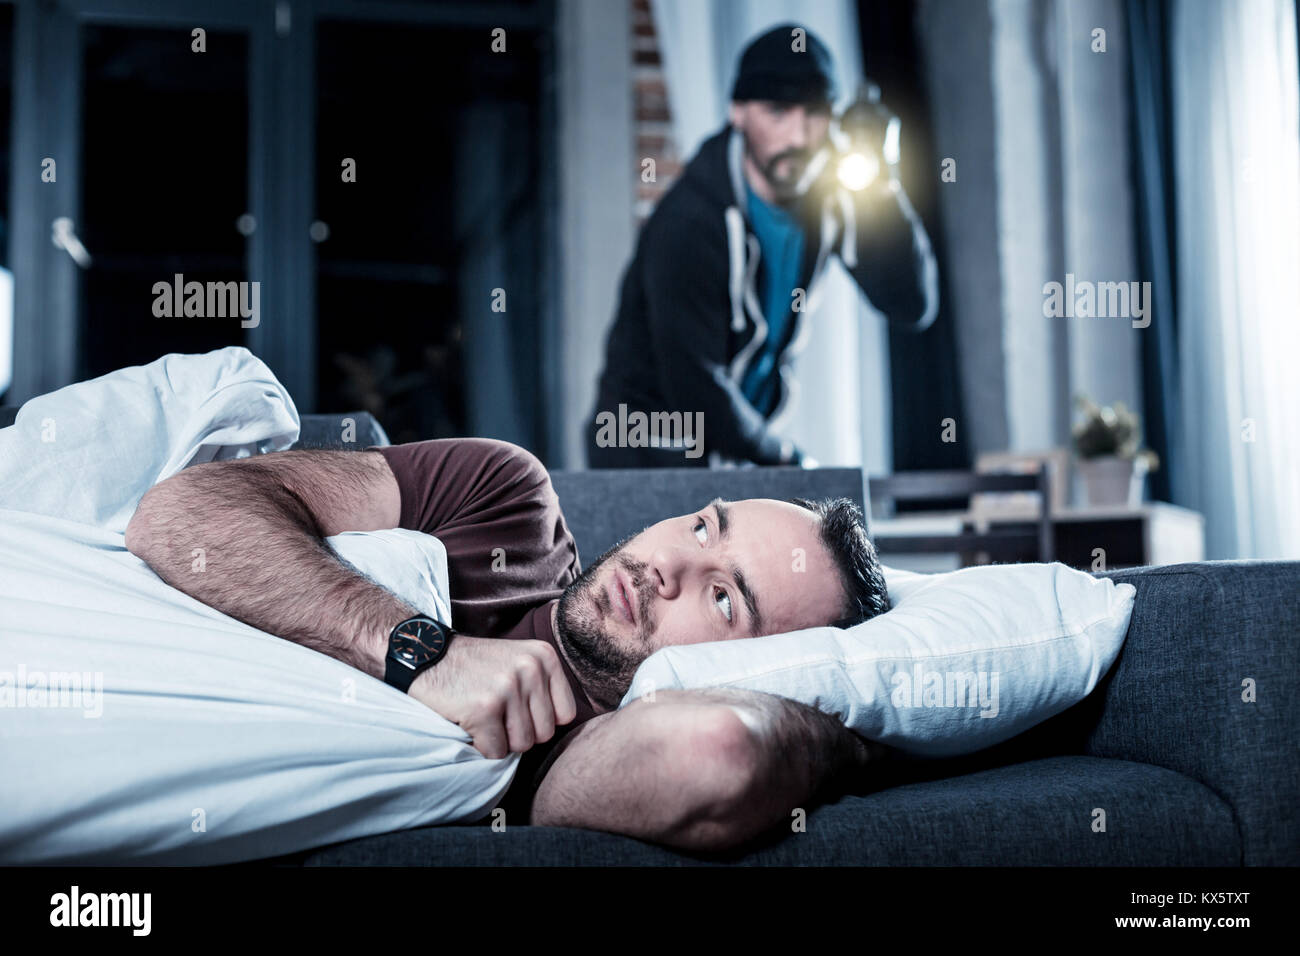 Agitated man waking up and hearing someone being inside - Stock Image